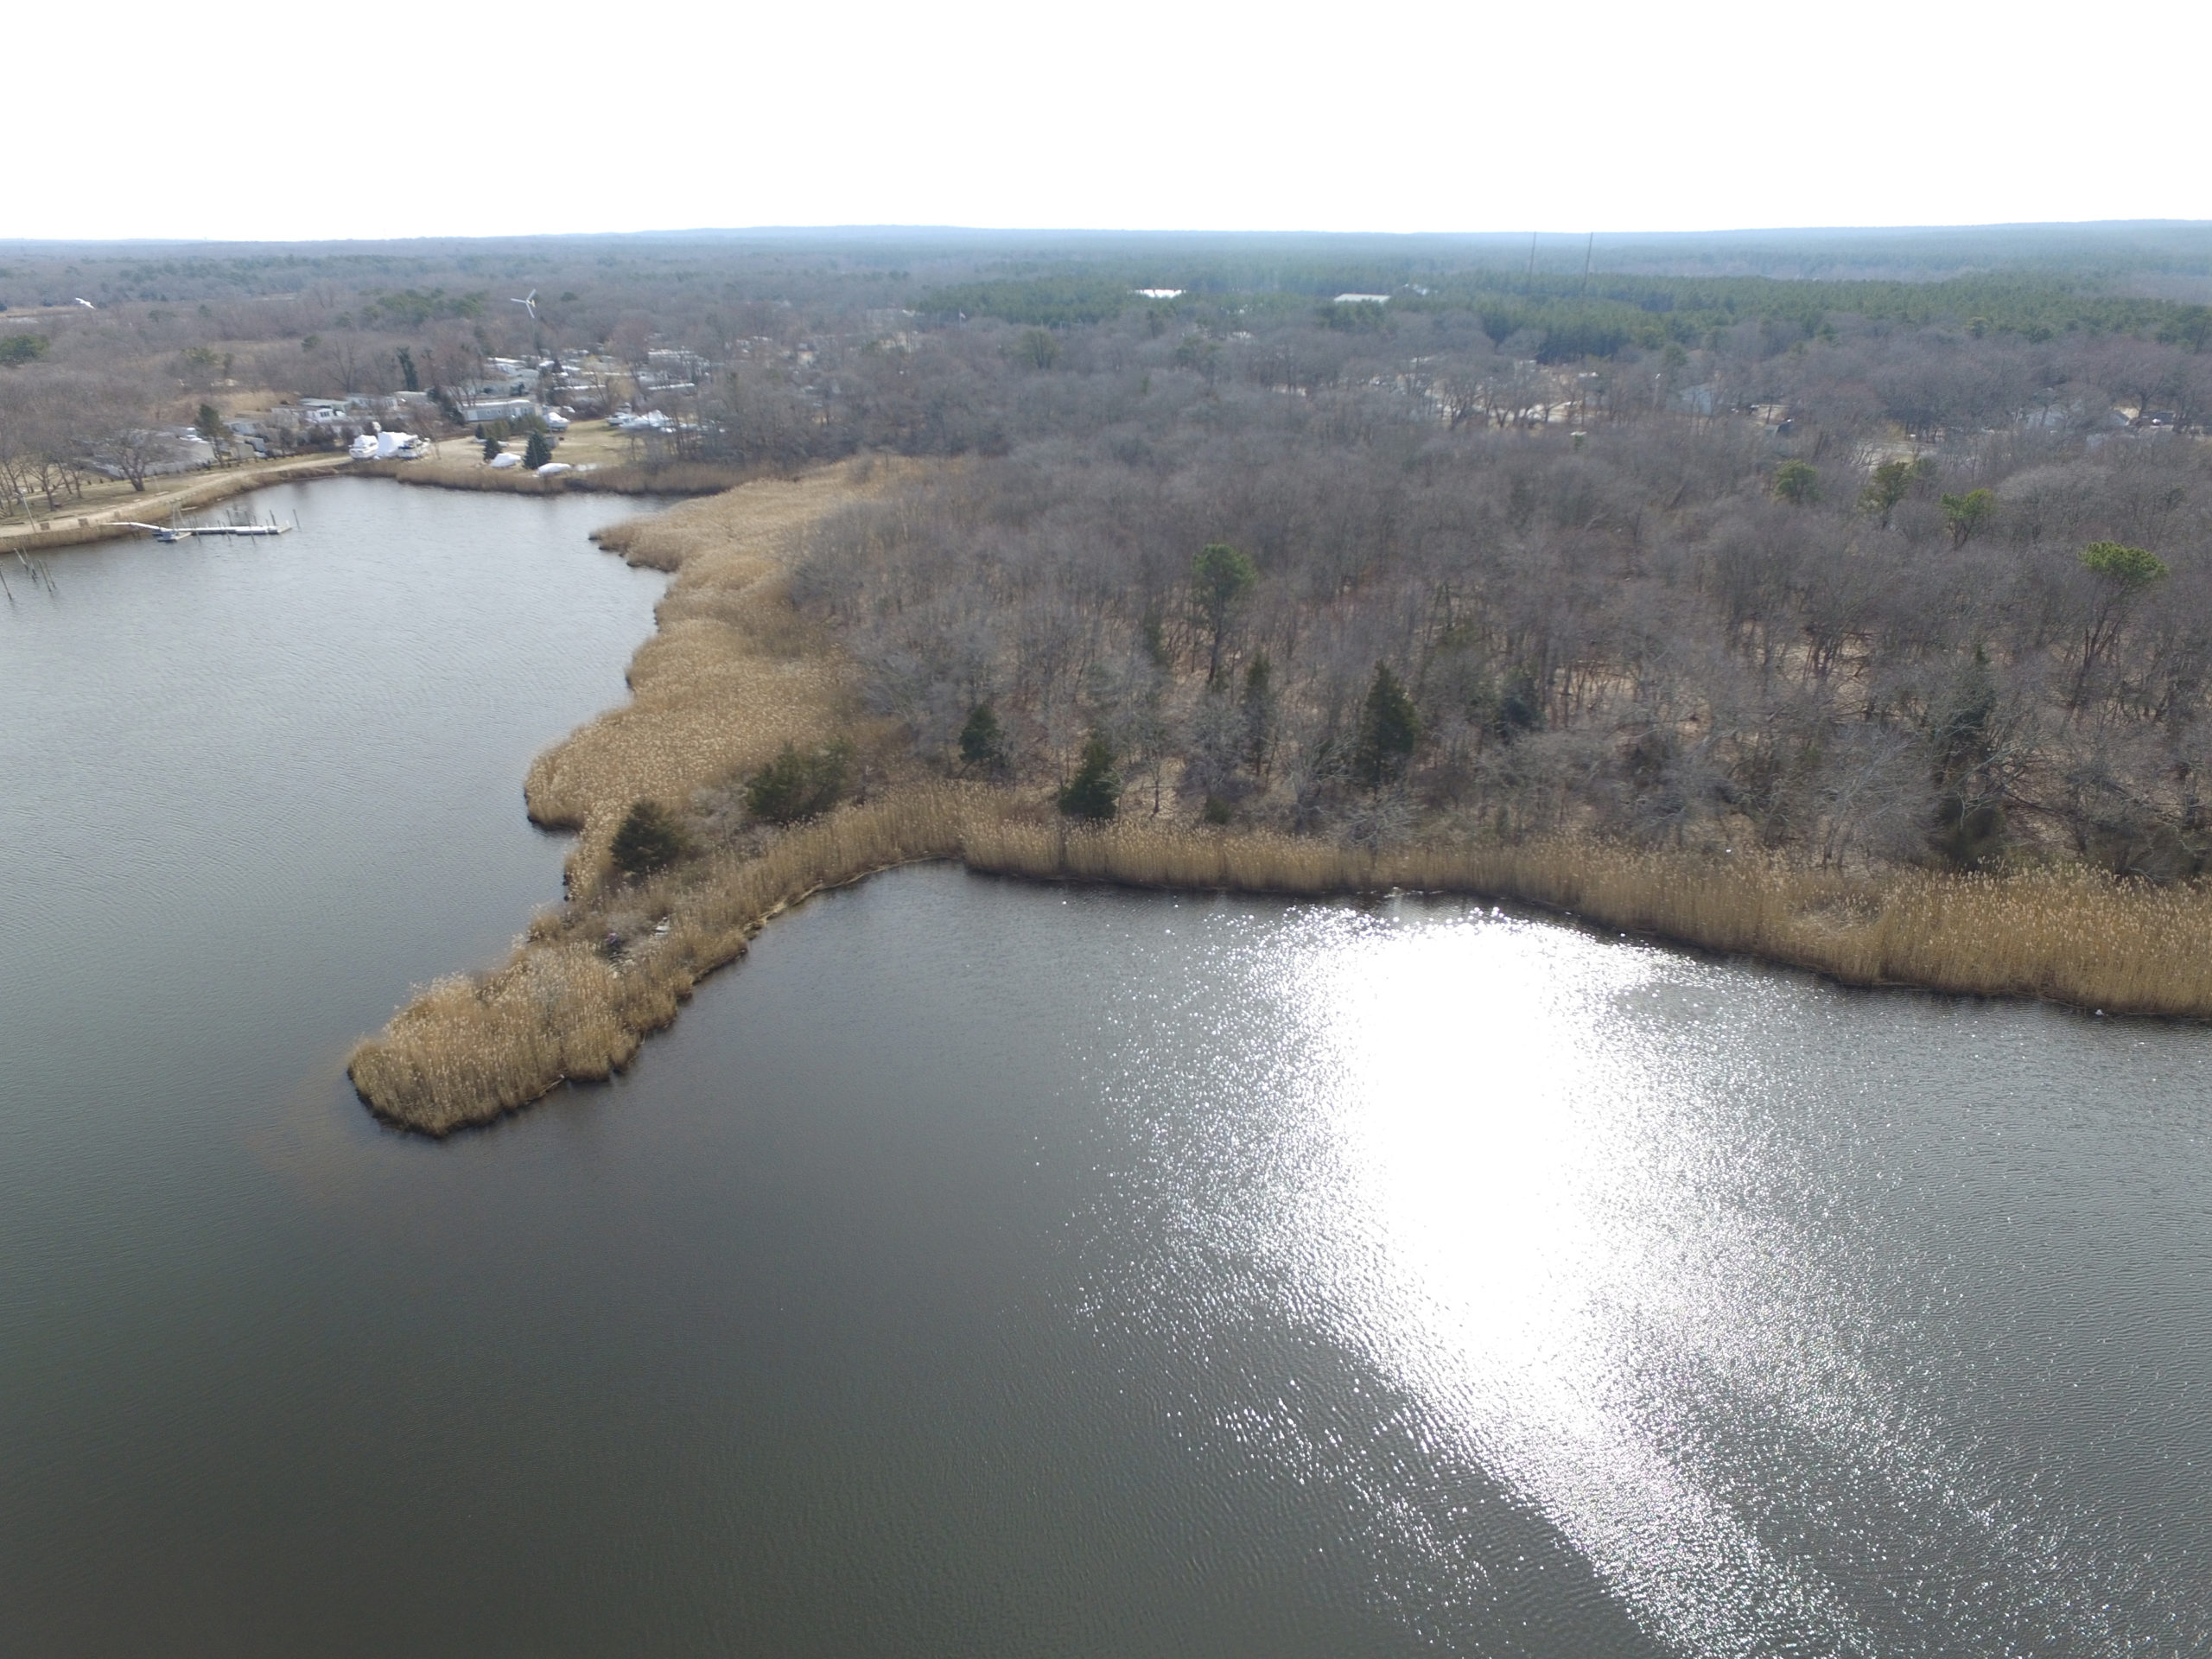 "February 28 -- A developer's plans for her shrinking Riverside property remain in limbo, as they have for nearly 20 years, though, this time, much of that uncertainty can be attributed to the still-unrealized potential in Southampton Town's most economically distressed hamlet. Dede Gotthelf, who now owns 6.22 acres overlooking the Peconic Riverroughly one-quarter of what she had owned when she began investing in Riverside in the late 1990s—says the planned construction of a sewage treatment plant in the town's nearby Enterprise Zone could open her remaining land, as well as neighboring properties, to new possibilities. She said those options could potentially include the construction of dozens of new units of much-needed workforce housing in the municipality, or the addition of several new waterfront businesses, possibly restaurants that would overlook the water and sit across from Riverhead Town's bustling downtown. ""I think it is a phenomenal piece of property in the overall attempt to revitalize Riverside, and I think something wonderful should happen with it,"" said Ms. Gotthelf, who currently has no formal application in the works. Diana Weir, the town's director of Housing and Community Development, said she has had several conversations with Ms. Gotthelf regarding her property over the past few months. Citing the pending construction of the sewage treatment plant, Ms. Weir said it is too early to know if it makes sense to build much-needed workforce housing complex on the site. She left open the possibility that there might be better uses for the land, noting that it could be the ideal place to offer outdoor recreational activities, such as kayaking or canoeing."